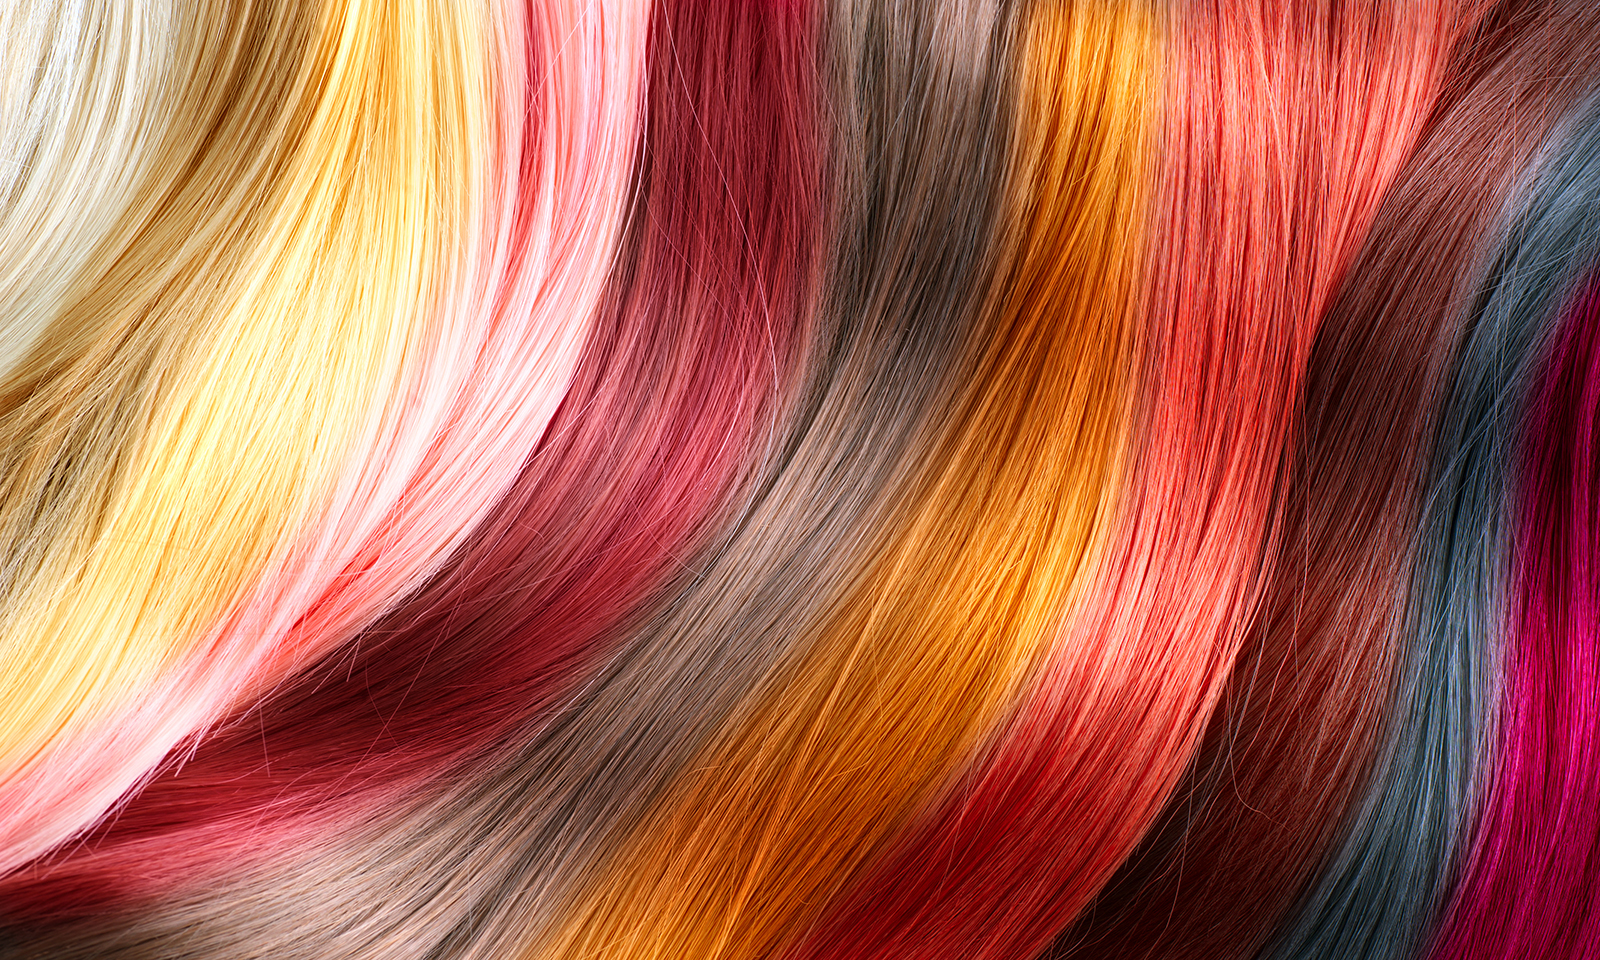 tips-to-dye-your-hair-at-home-spectrum-of-hair-colors